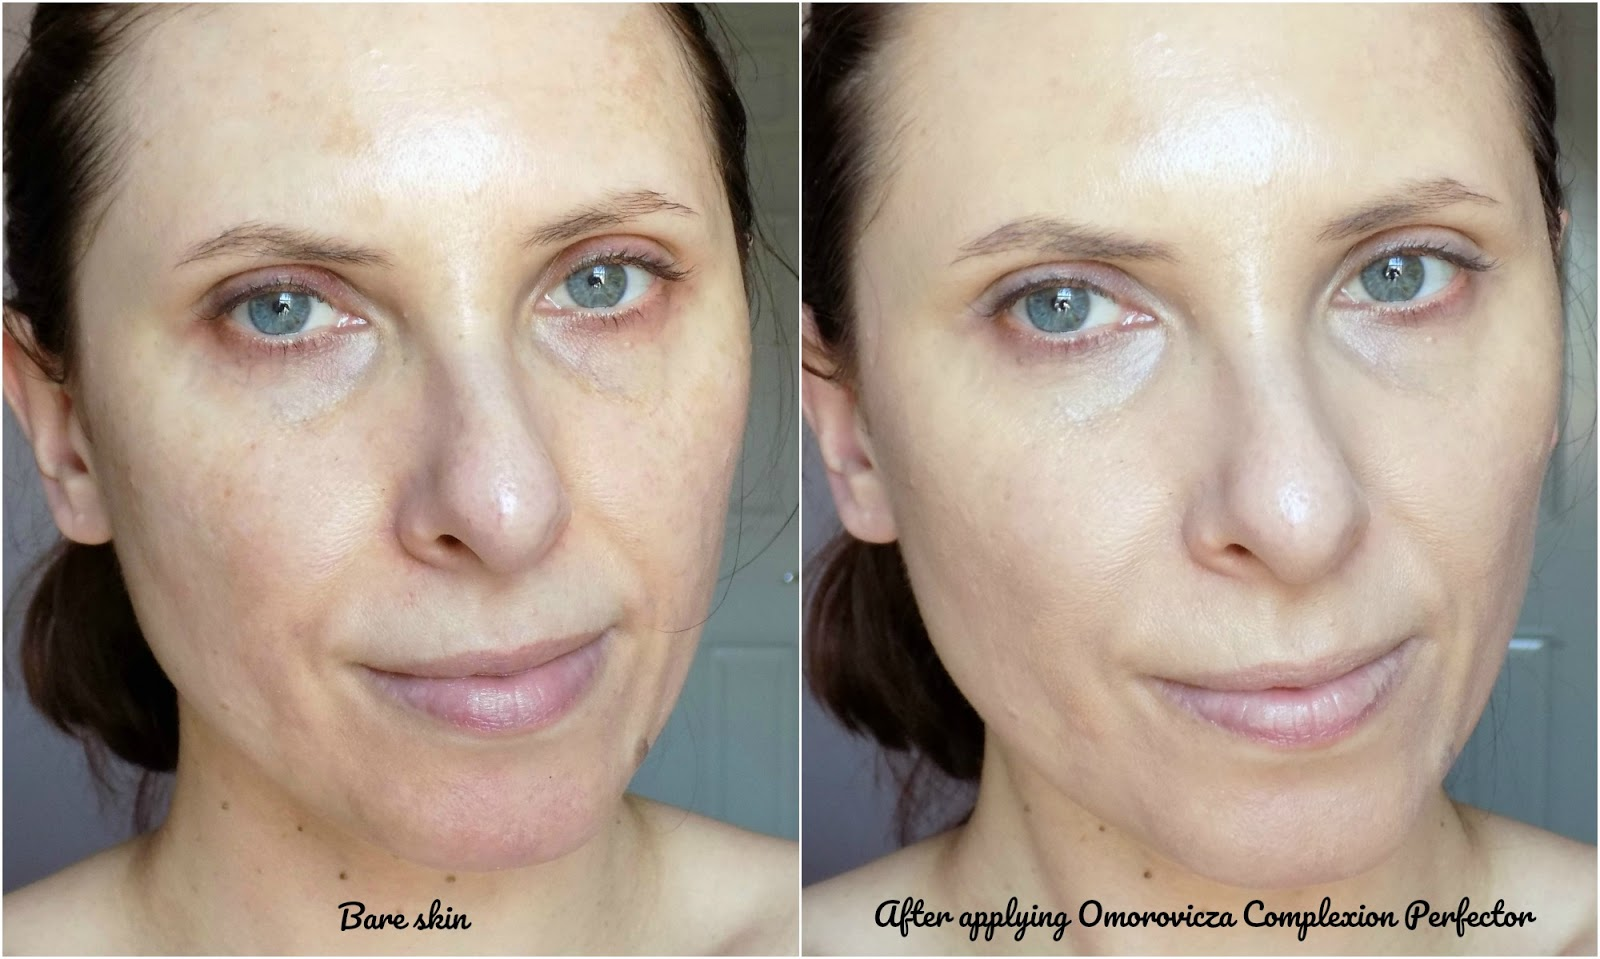 Omorovicza Complexion Perfector SPF20, before and after photos